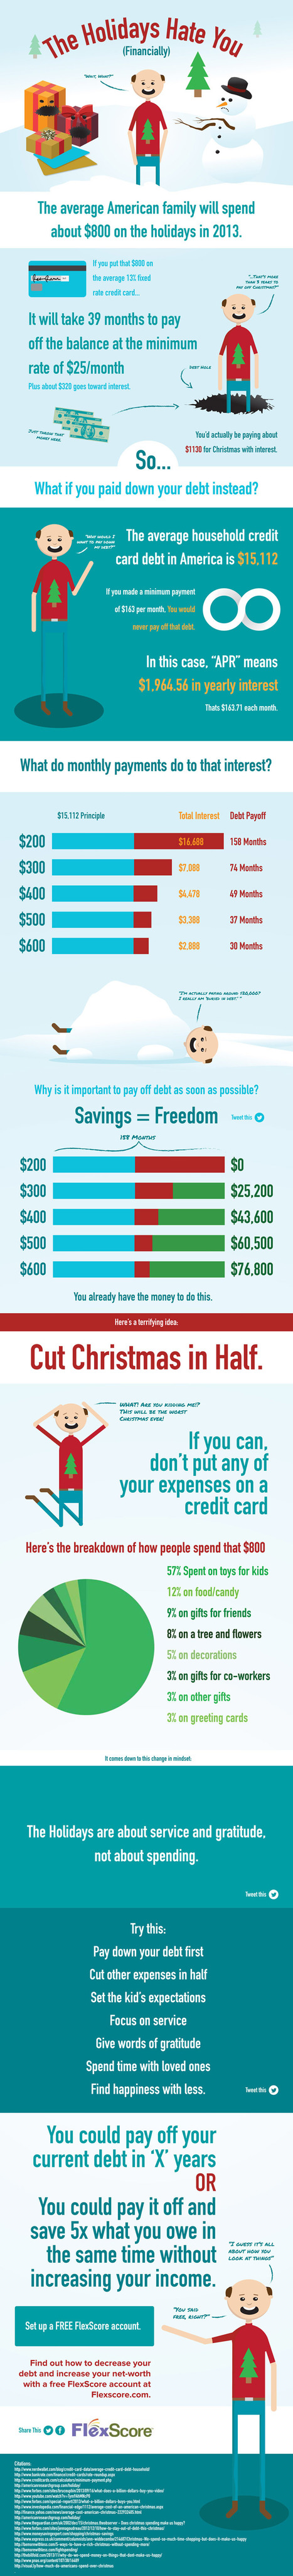 The Holidays Hate You Financially | Collateral Websurfing | Scoop.it